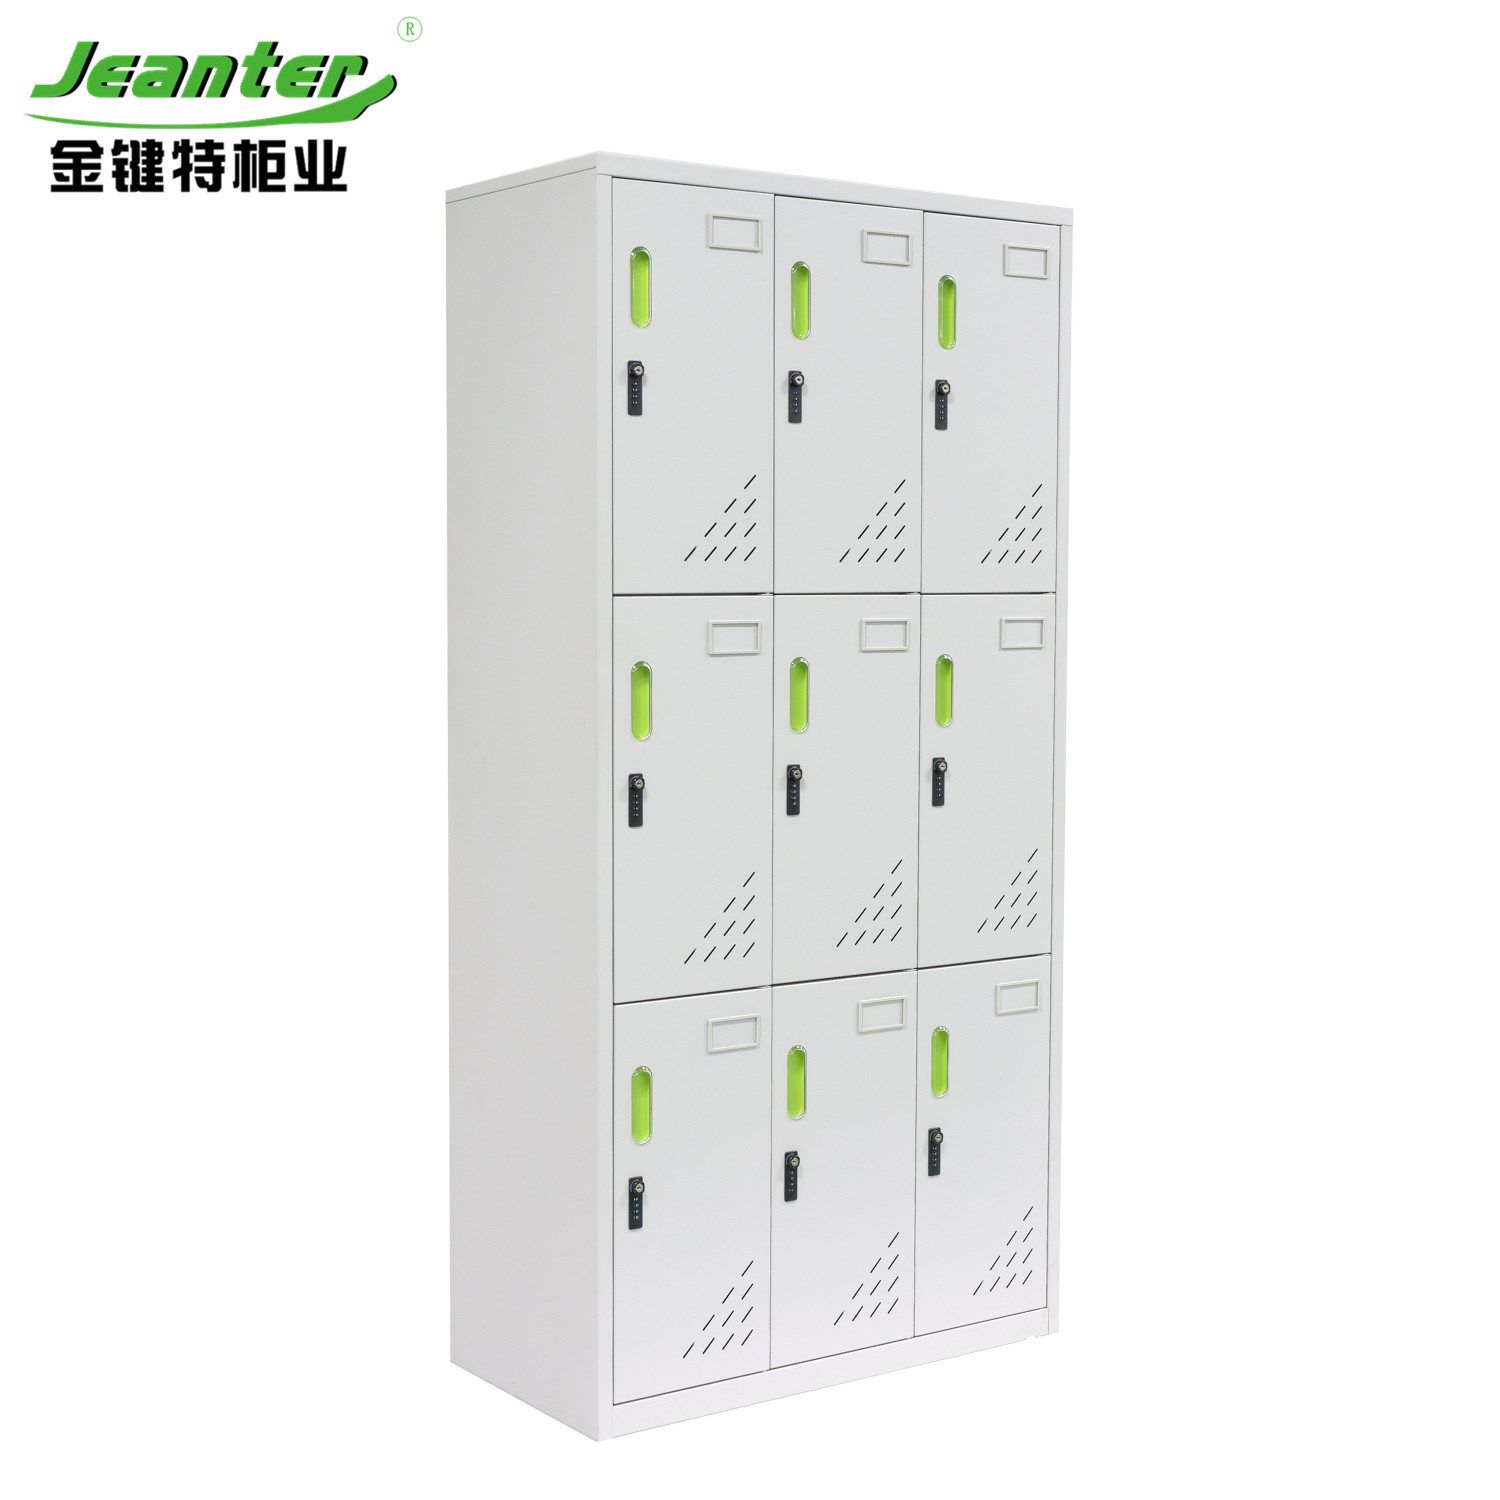 Hot Item Steel 9 Doors Locker With Long Handle In 2020 Steel Locker School Storage Storage